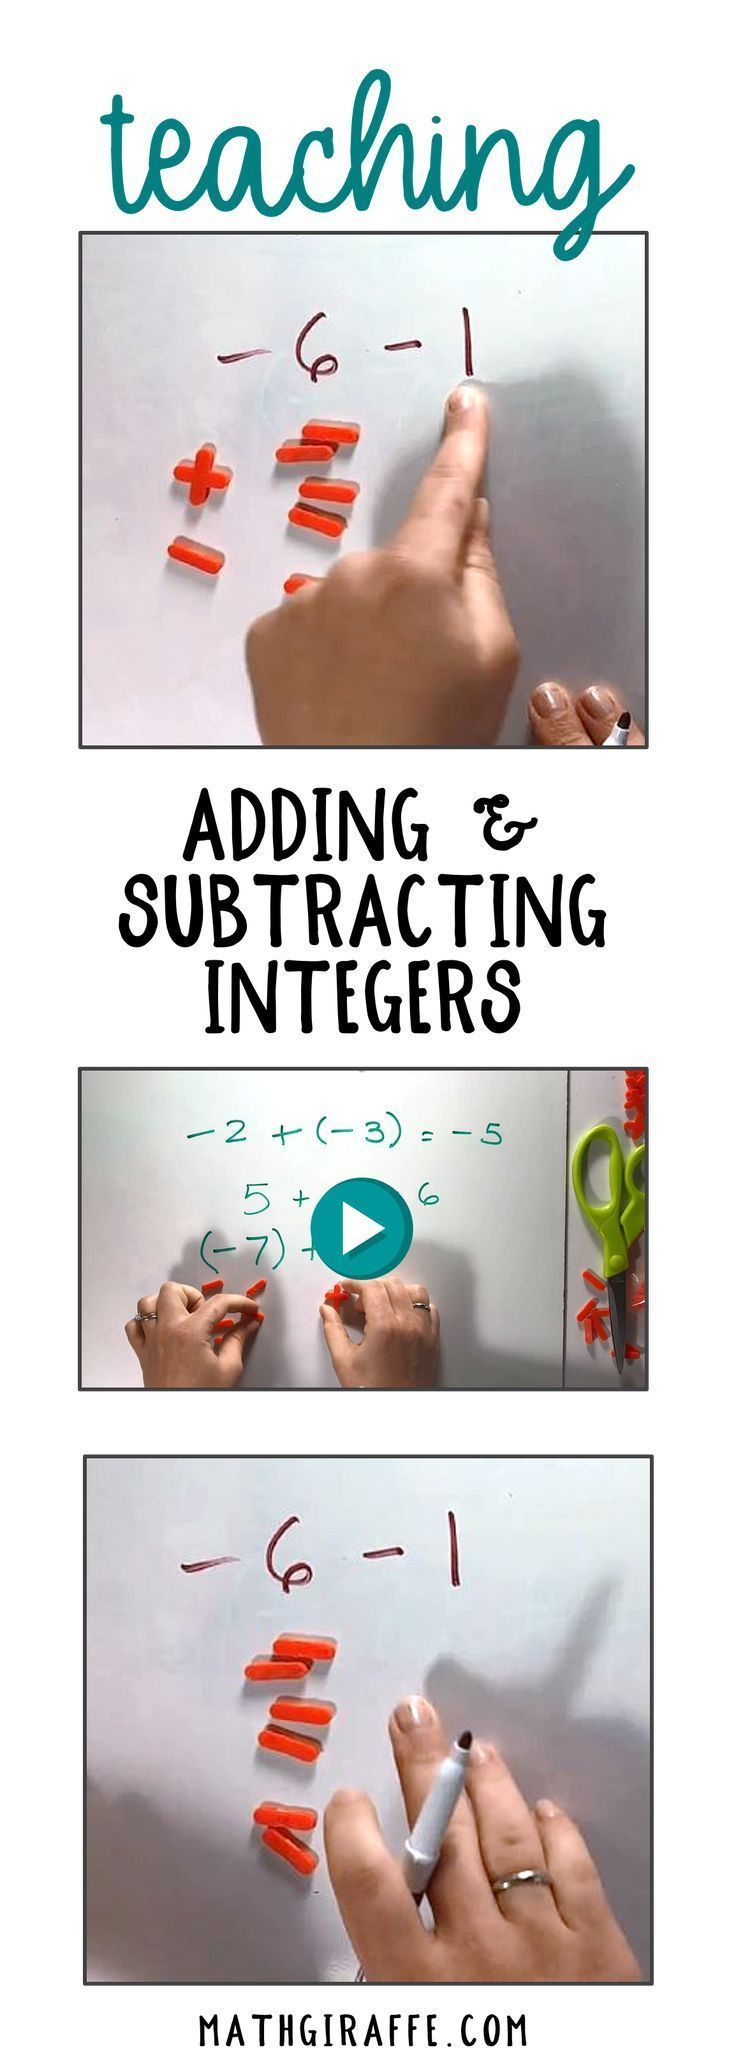 Adding And Subtracting Integers A Free Hands On Discovery Lesson Downloadable Wo Adding And Subtracting Integers Adding And Subtracting Subtracting Integers Inverse addition and subtraction